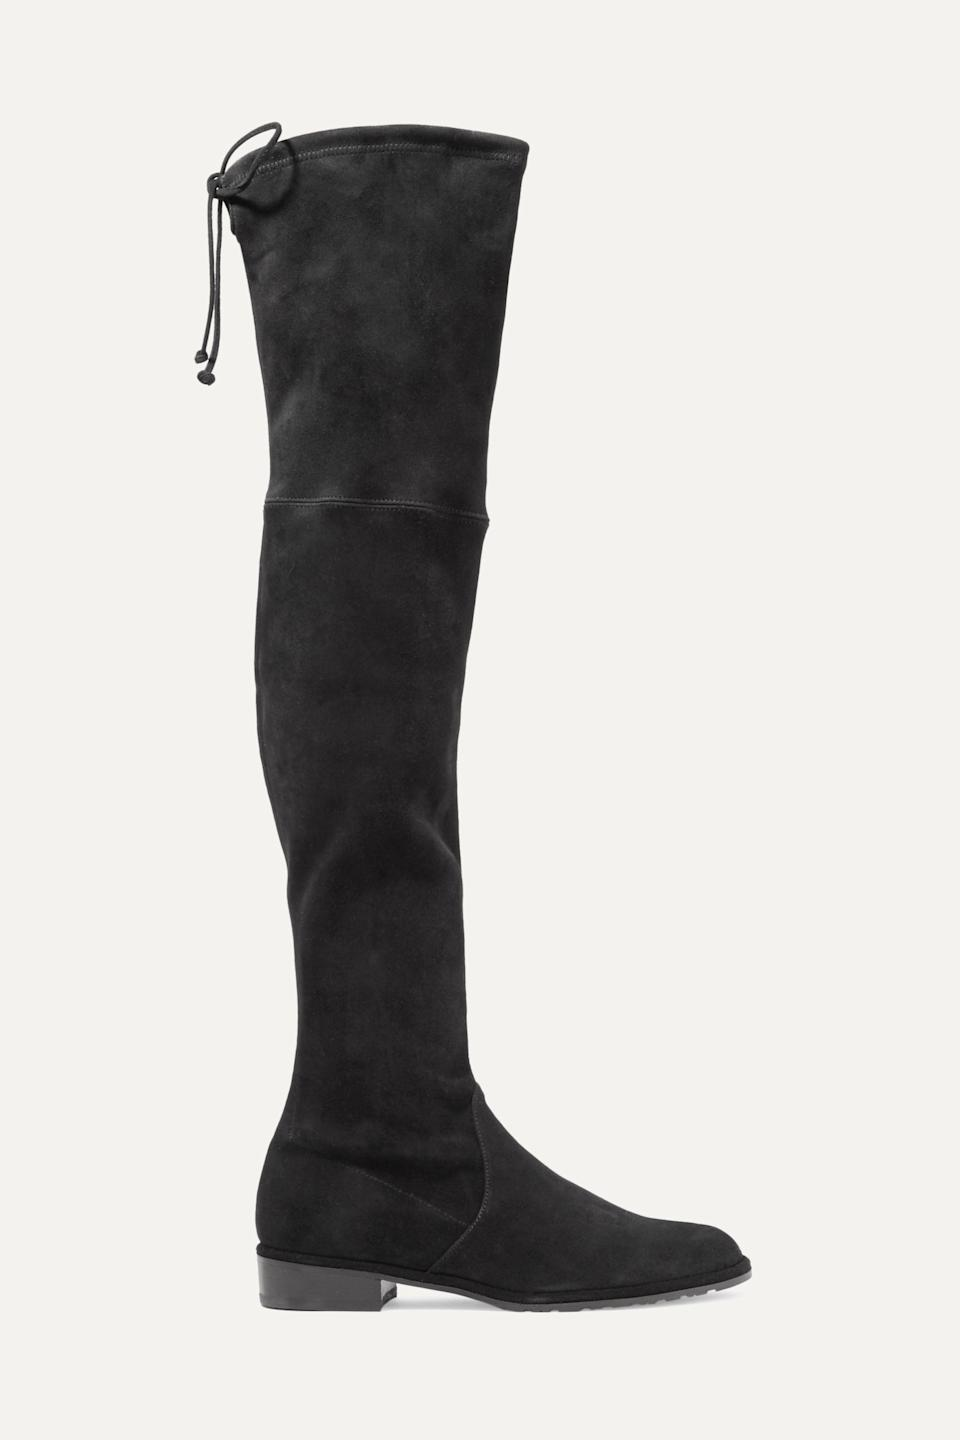 "<p><strong>Stuart Weitzman</strong></p><p>net-a-porter.com</p><p><strong>$795.00</strong></p><p><a href=""https://go.redirectingat.com?id=74968X1596630&url=https%3A%2F%2Fwww.net-a-porter.com%2Fen-us%2Fshop%2Fproduct%2Fstuart-weitzman%2Flowland-suede-over-the-knee-boots%2F900644&sref=https%3A%2F%2Fwww.townandcountrymag.com%2Fstyle%2Ffashion-trends%2Fg28225508%2Ffall-boots%2F"" rel=""nofollow noopener"" target=""_blank"" data-ylk=""slk:Shop Now"" class=""link rapid-noclick-resp"">Shop Now</a></p><p>Stuart Weitzman is justifiably famous for his over the knee boots, and this fall is the ideal time to finally invest in a pair. You'll wear them everywhere. </p>"